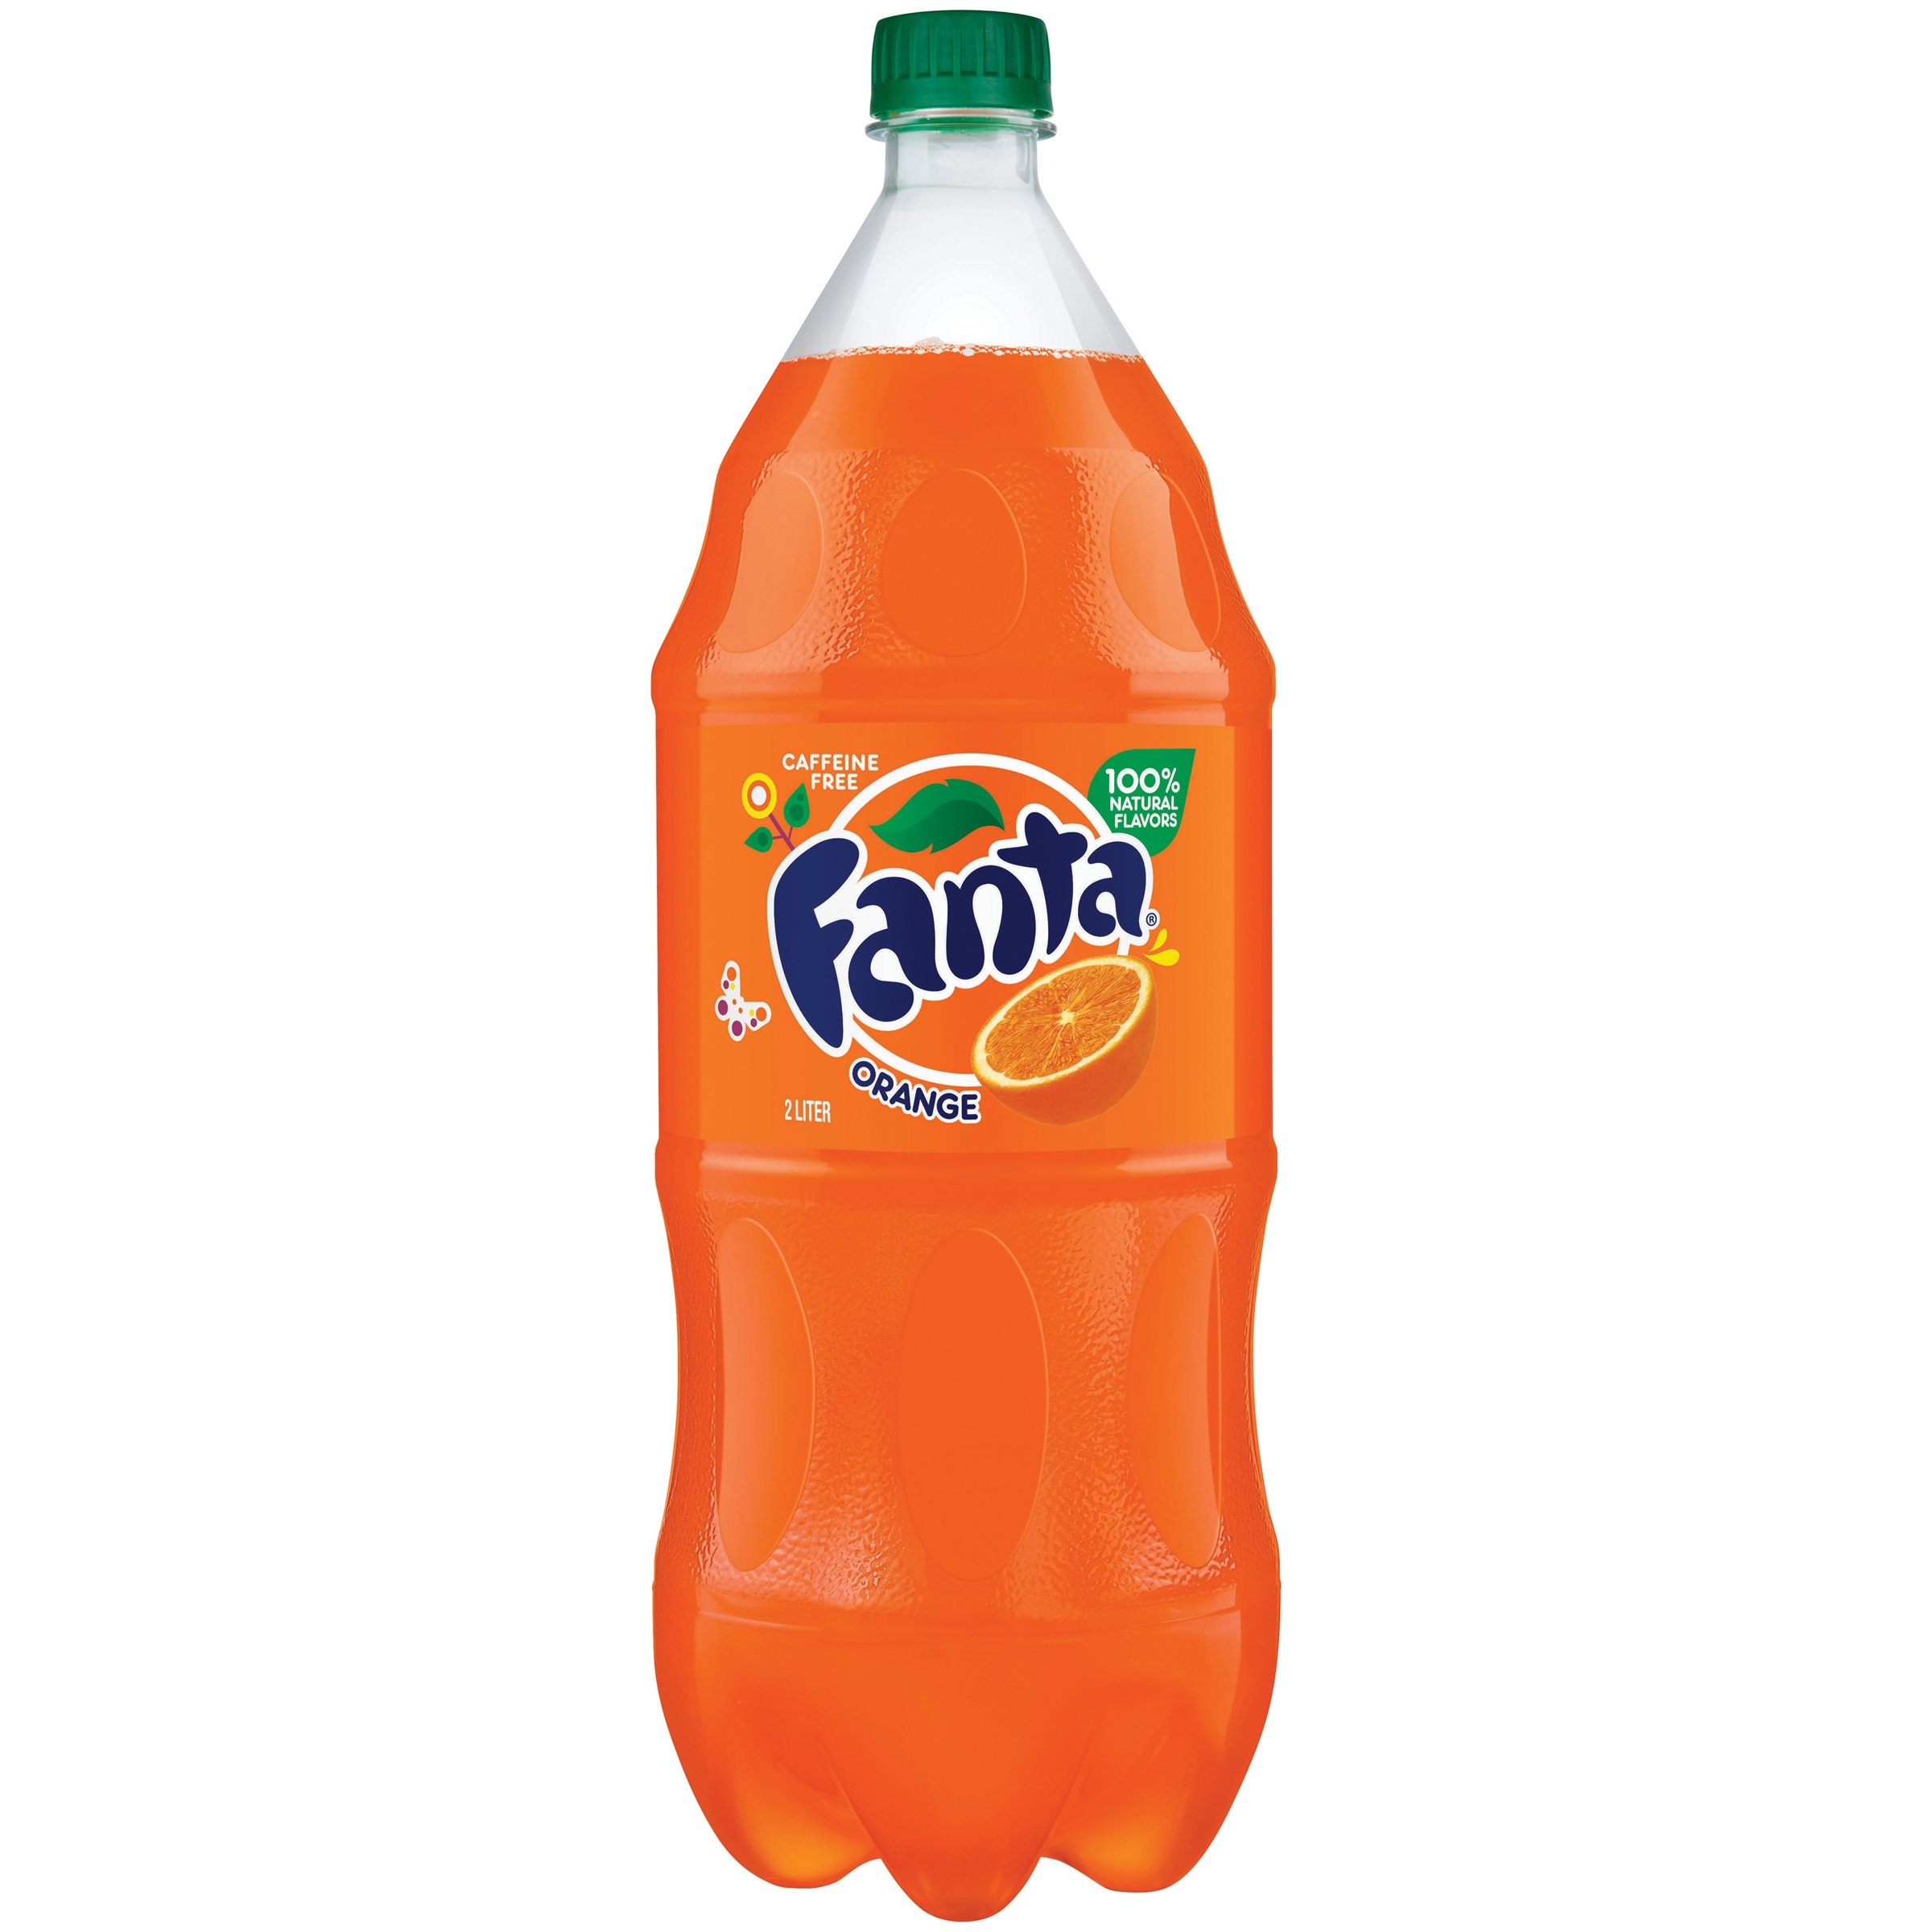 Fanta Orange Soda Fruit Flavored Soft Drink, 67.6 Fl Oz